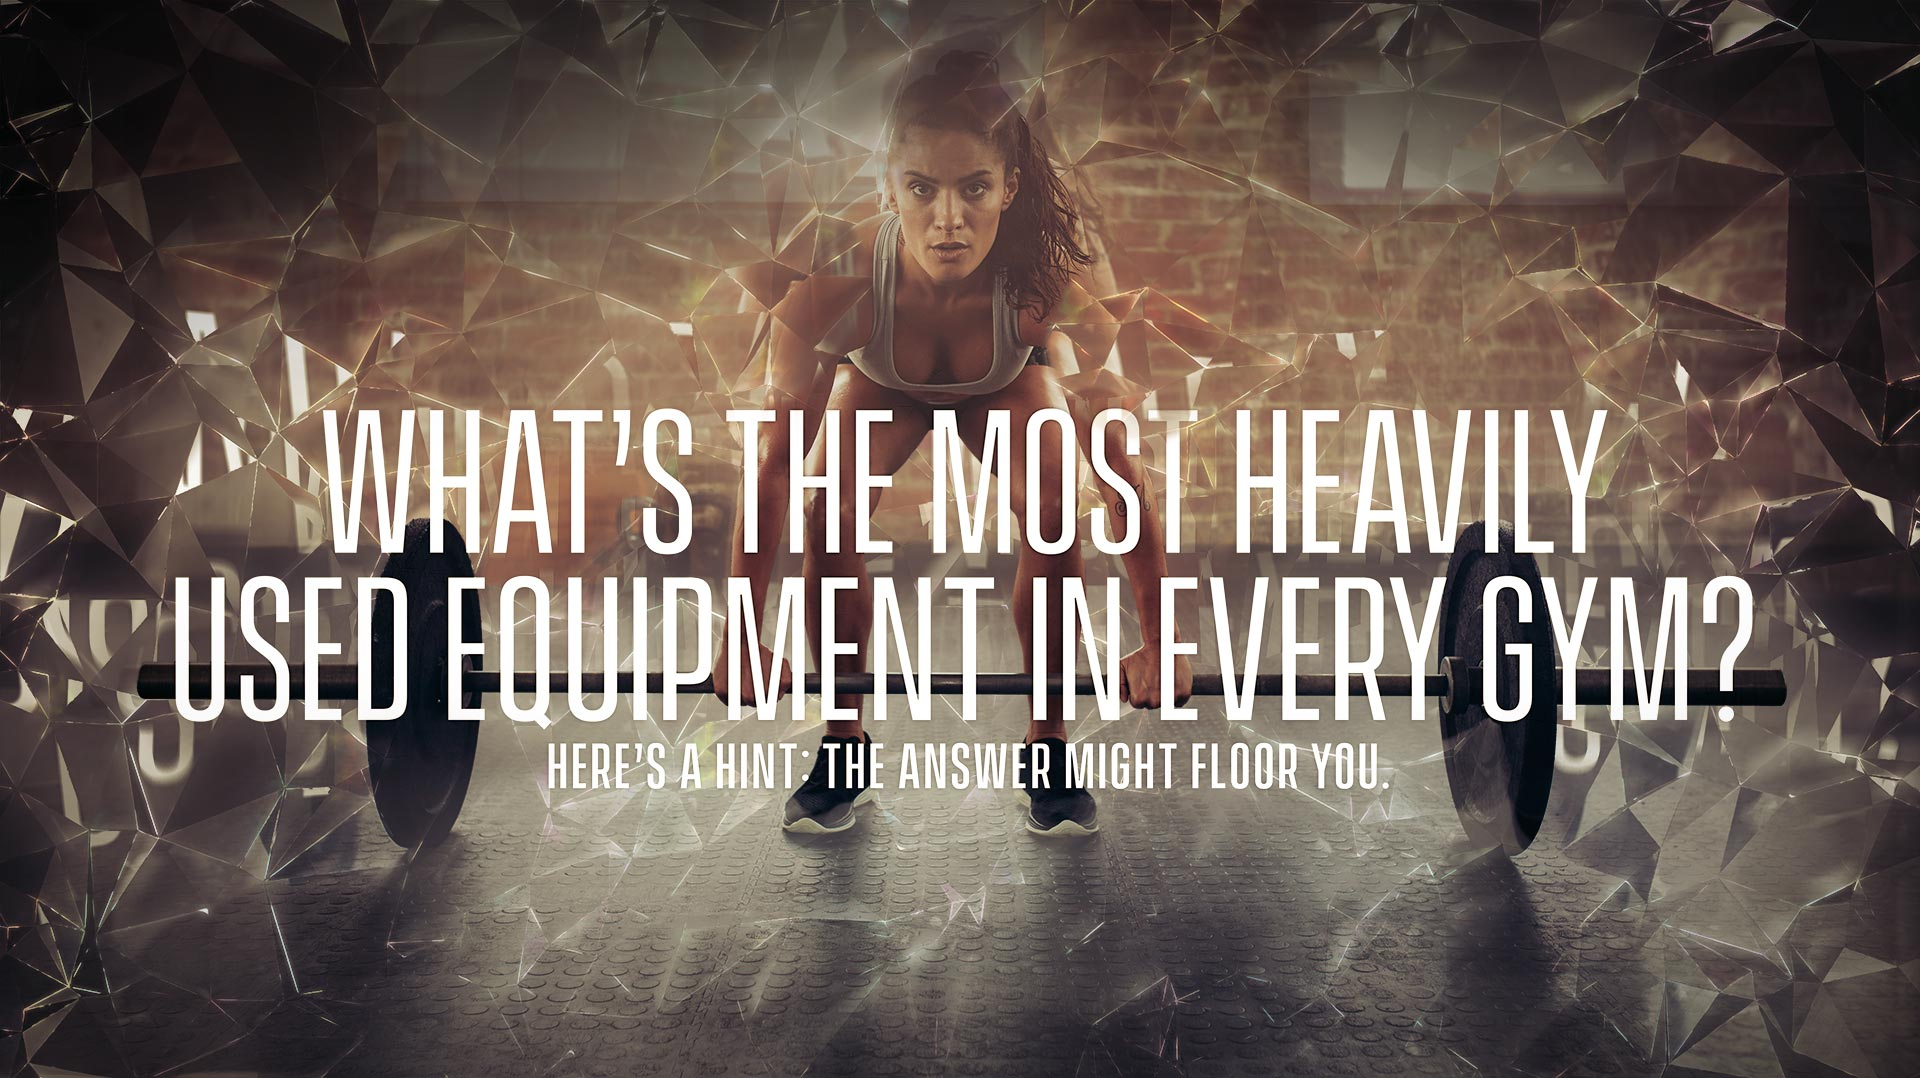 What's the most heavily used equipment in every gym? Here's a hint: the answer might floor you.